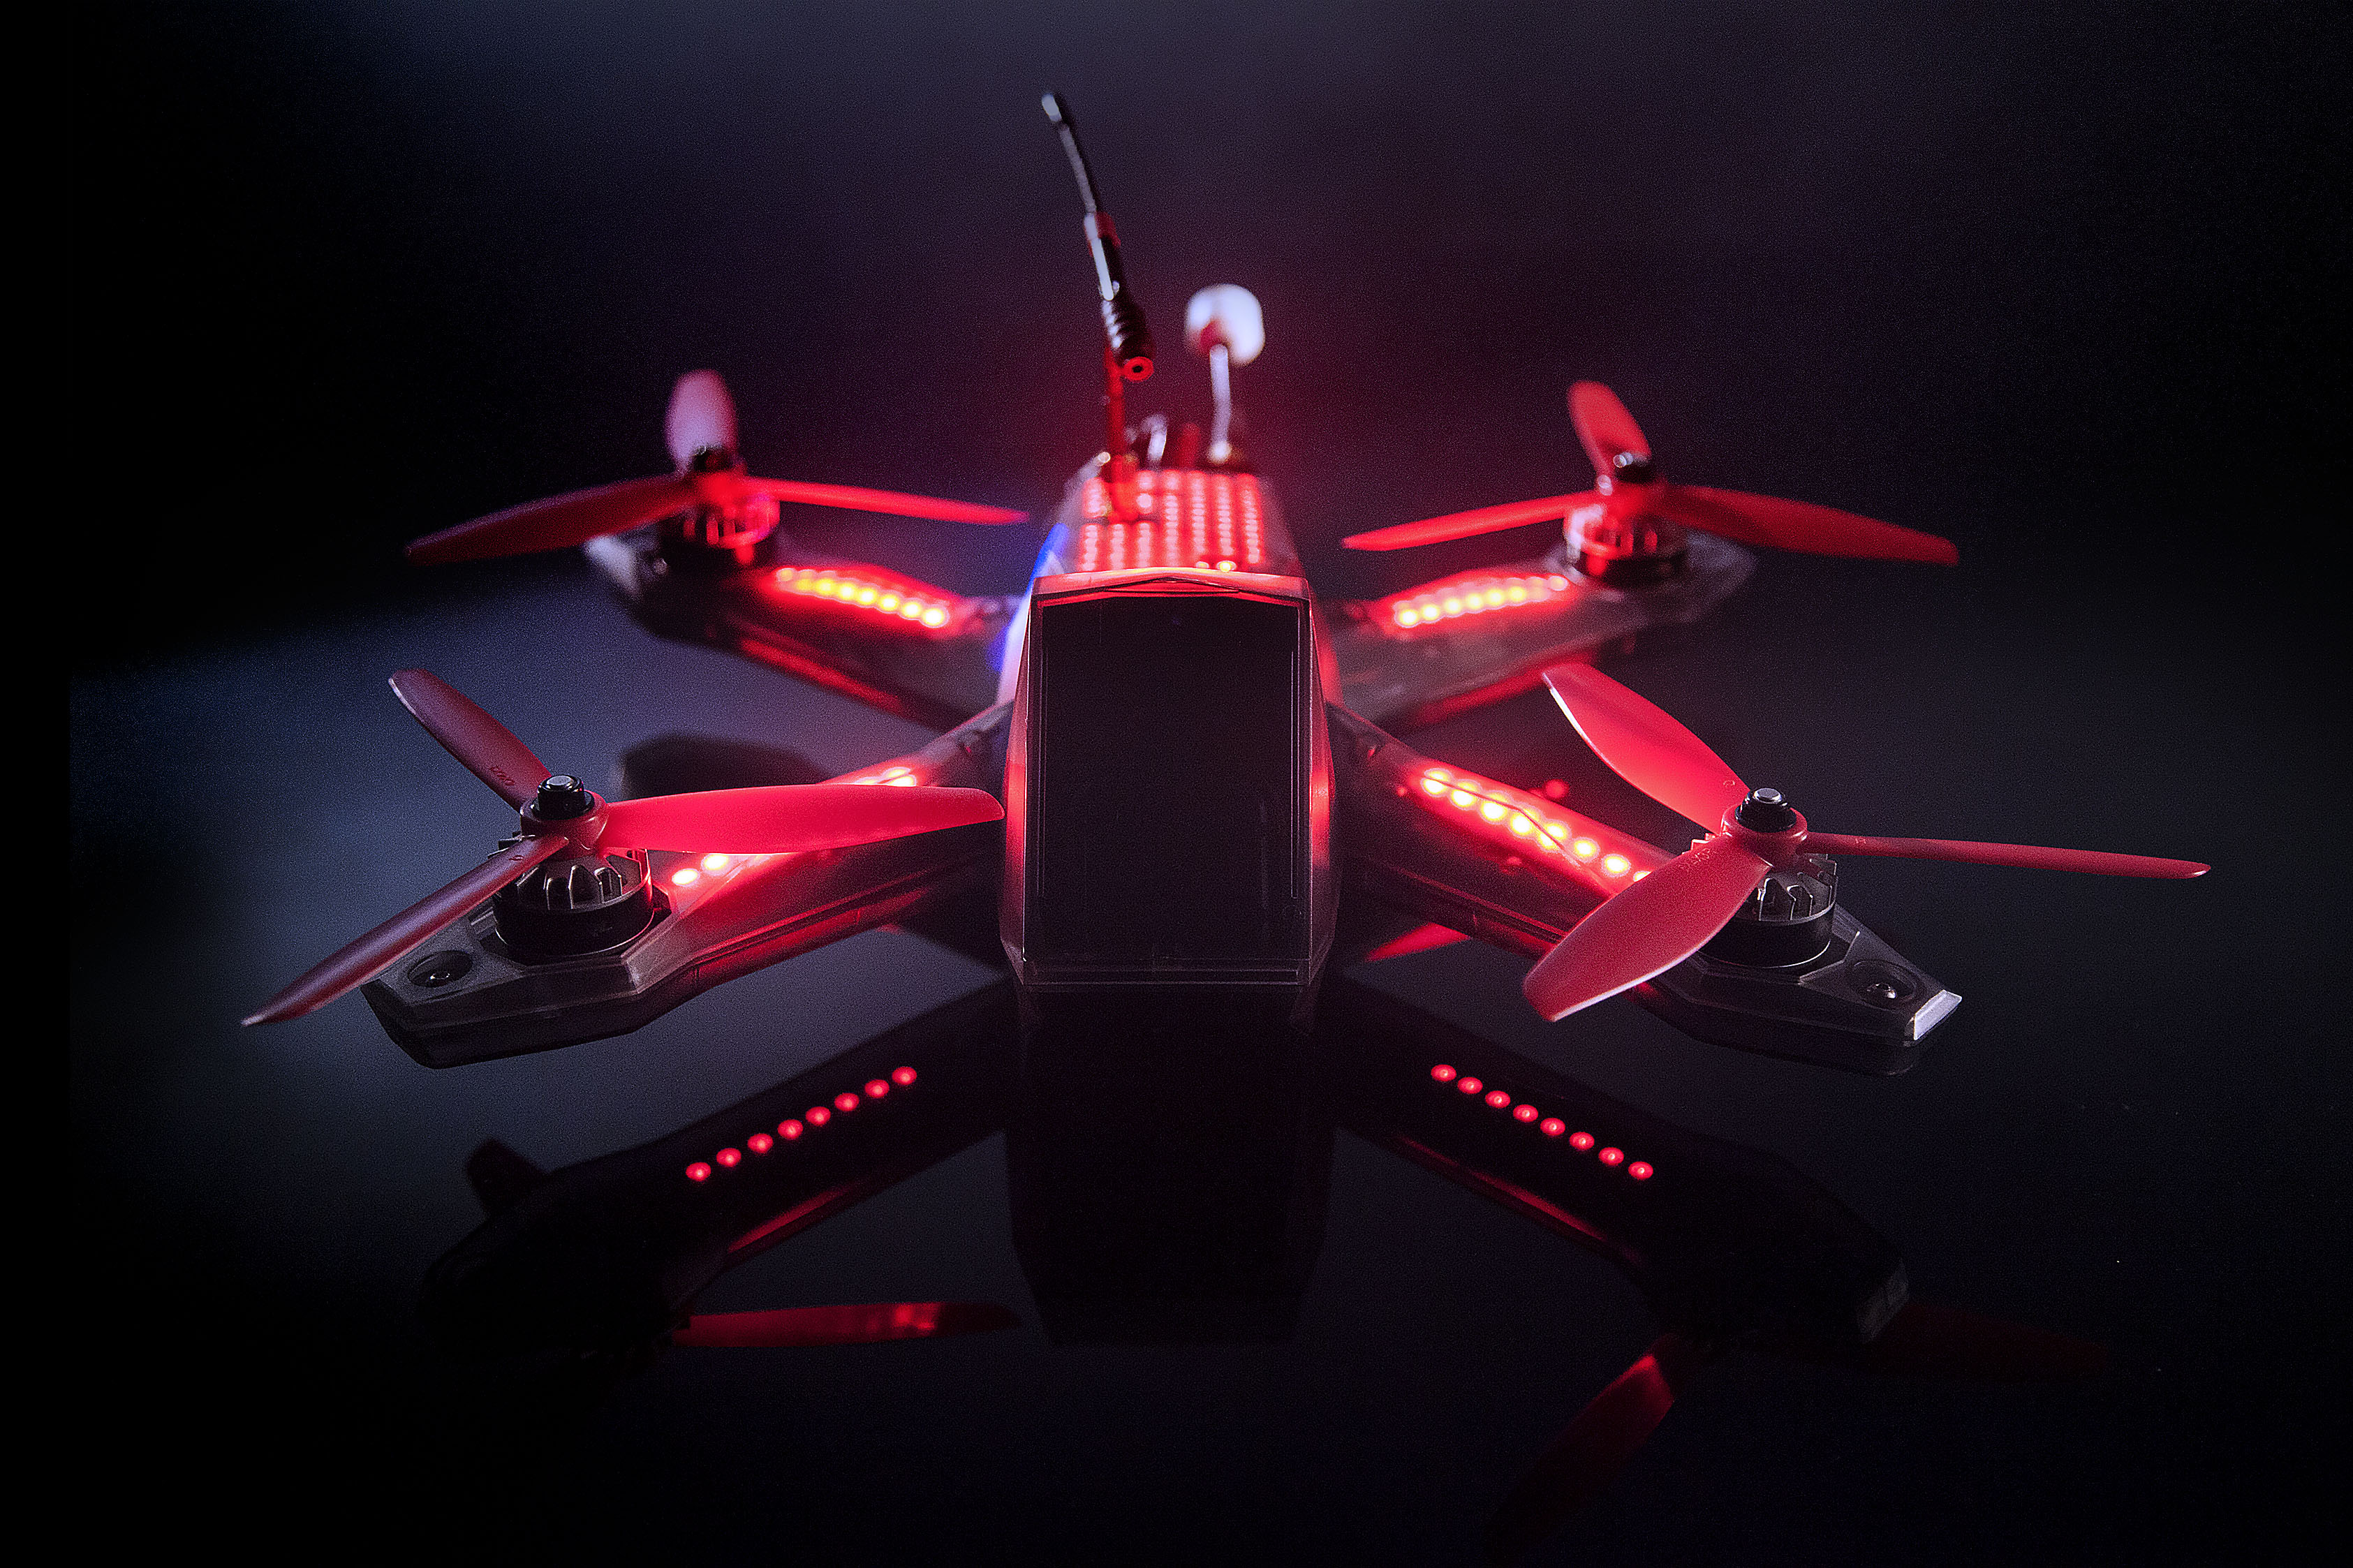 The New Design Is Helpful For Pilots Who Are Already In League That Want To Practice But Drone Racing Still A Very Young Sport And DRL Eager